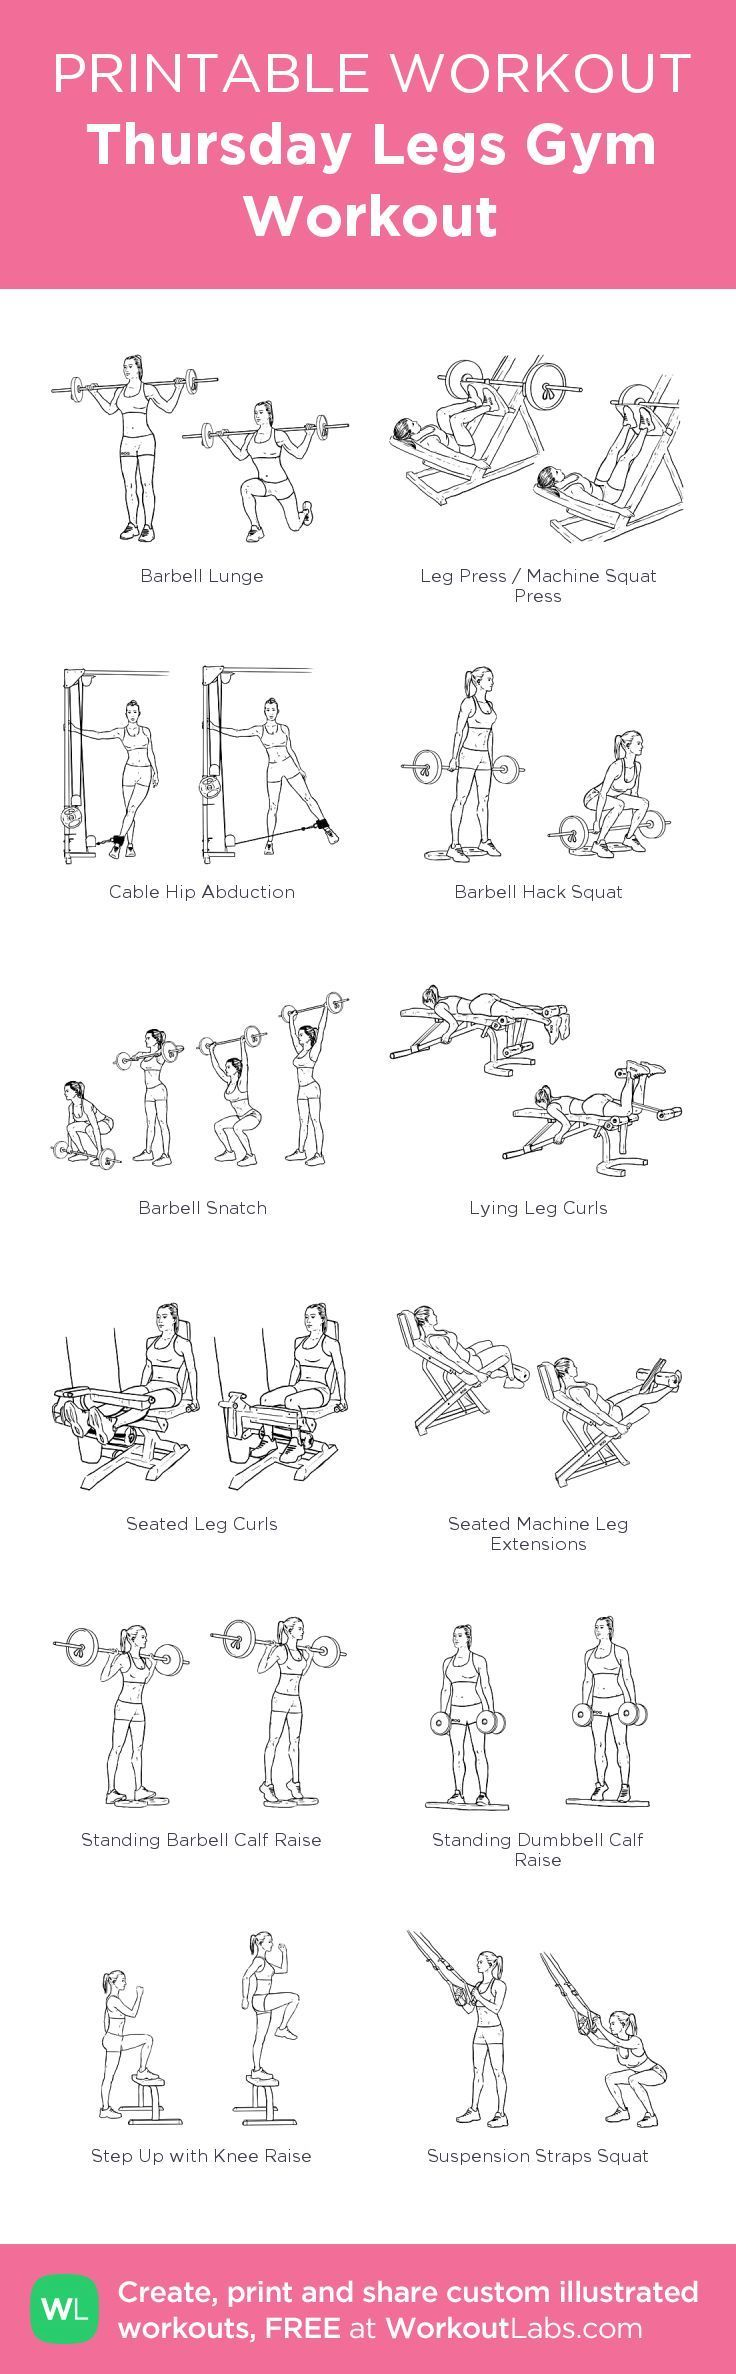 How to lose lower belly fat bodybuilding image 8